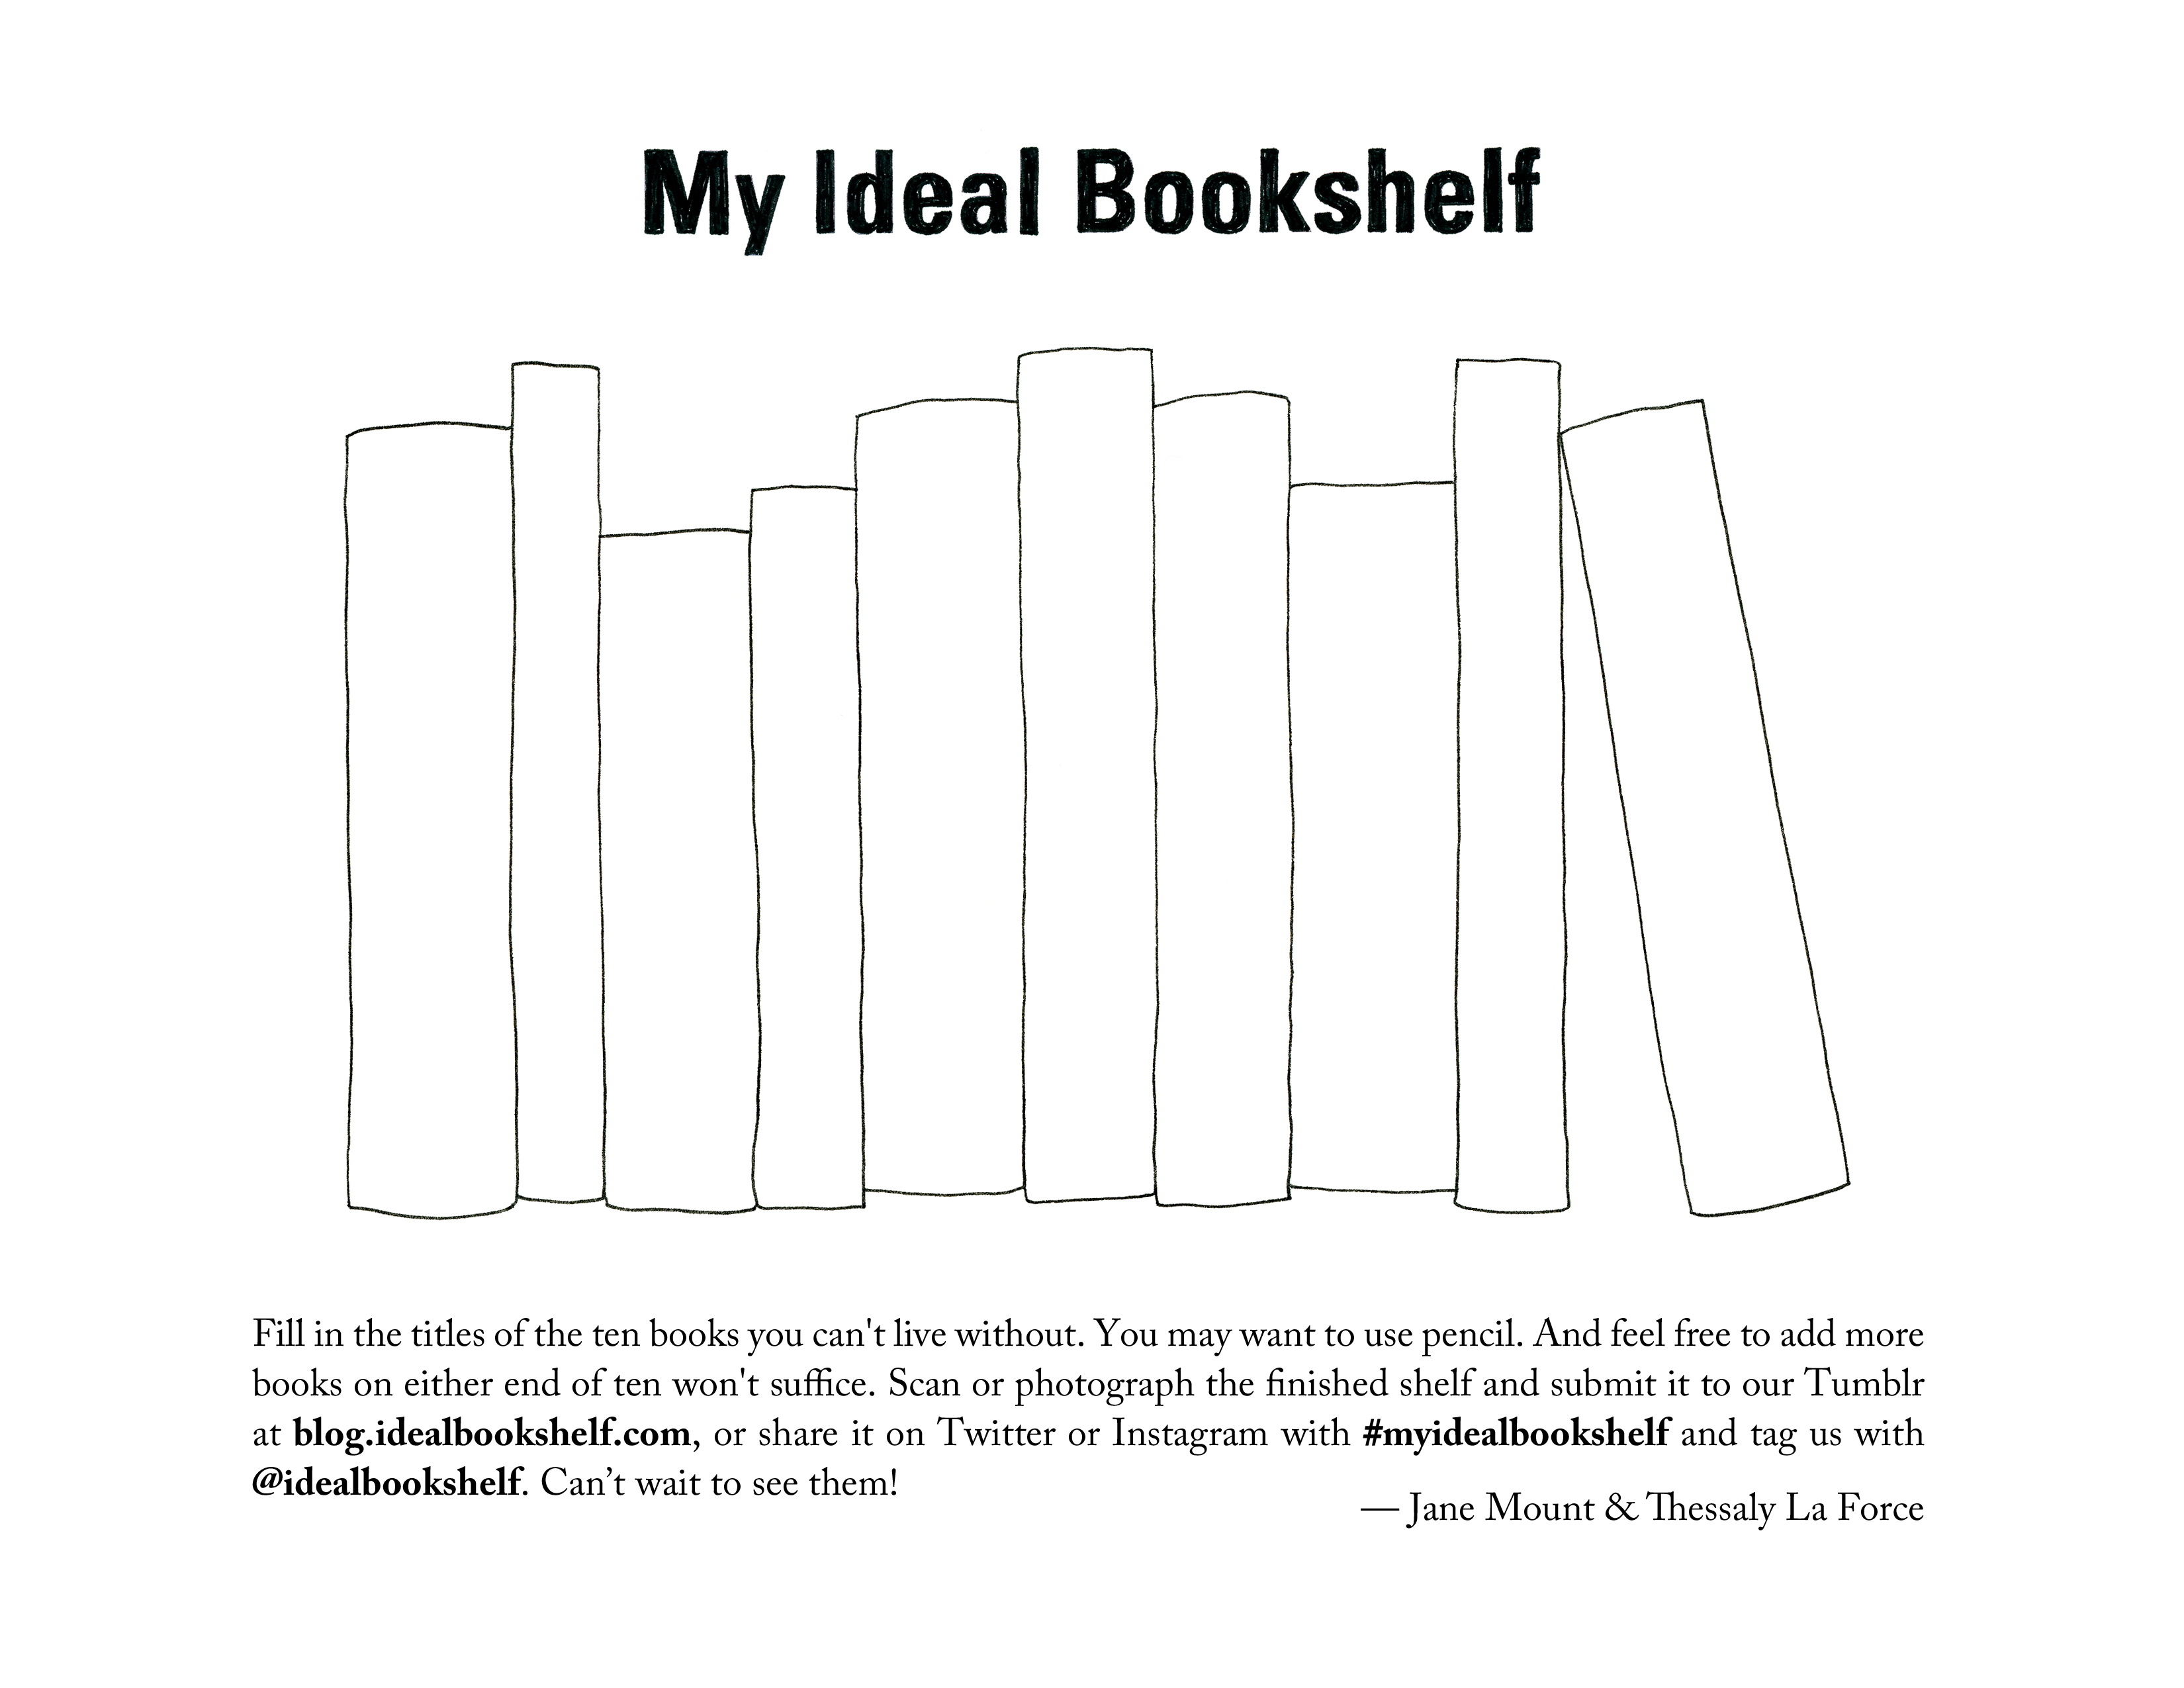 My Ideal Bookshelf Free Printable With Prompt